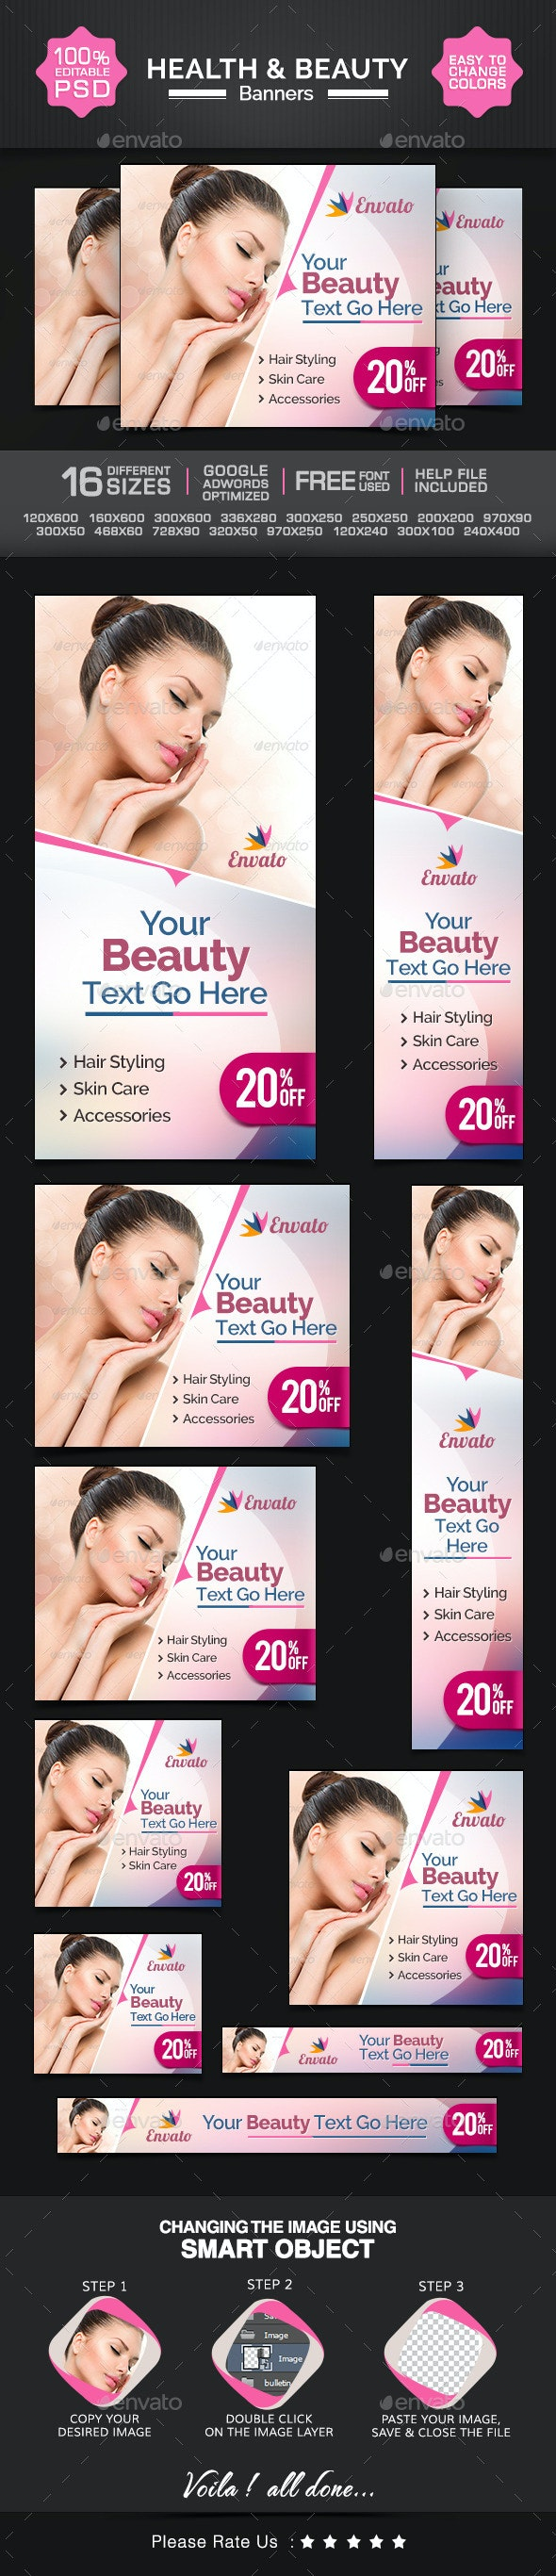 Health & Beauty Banners - Banners & Ads Web Elements